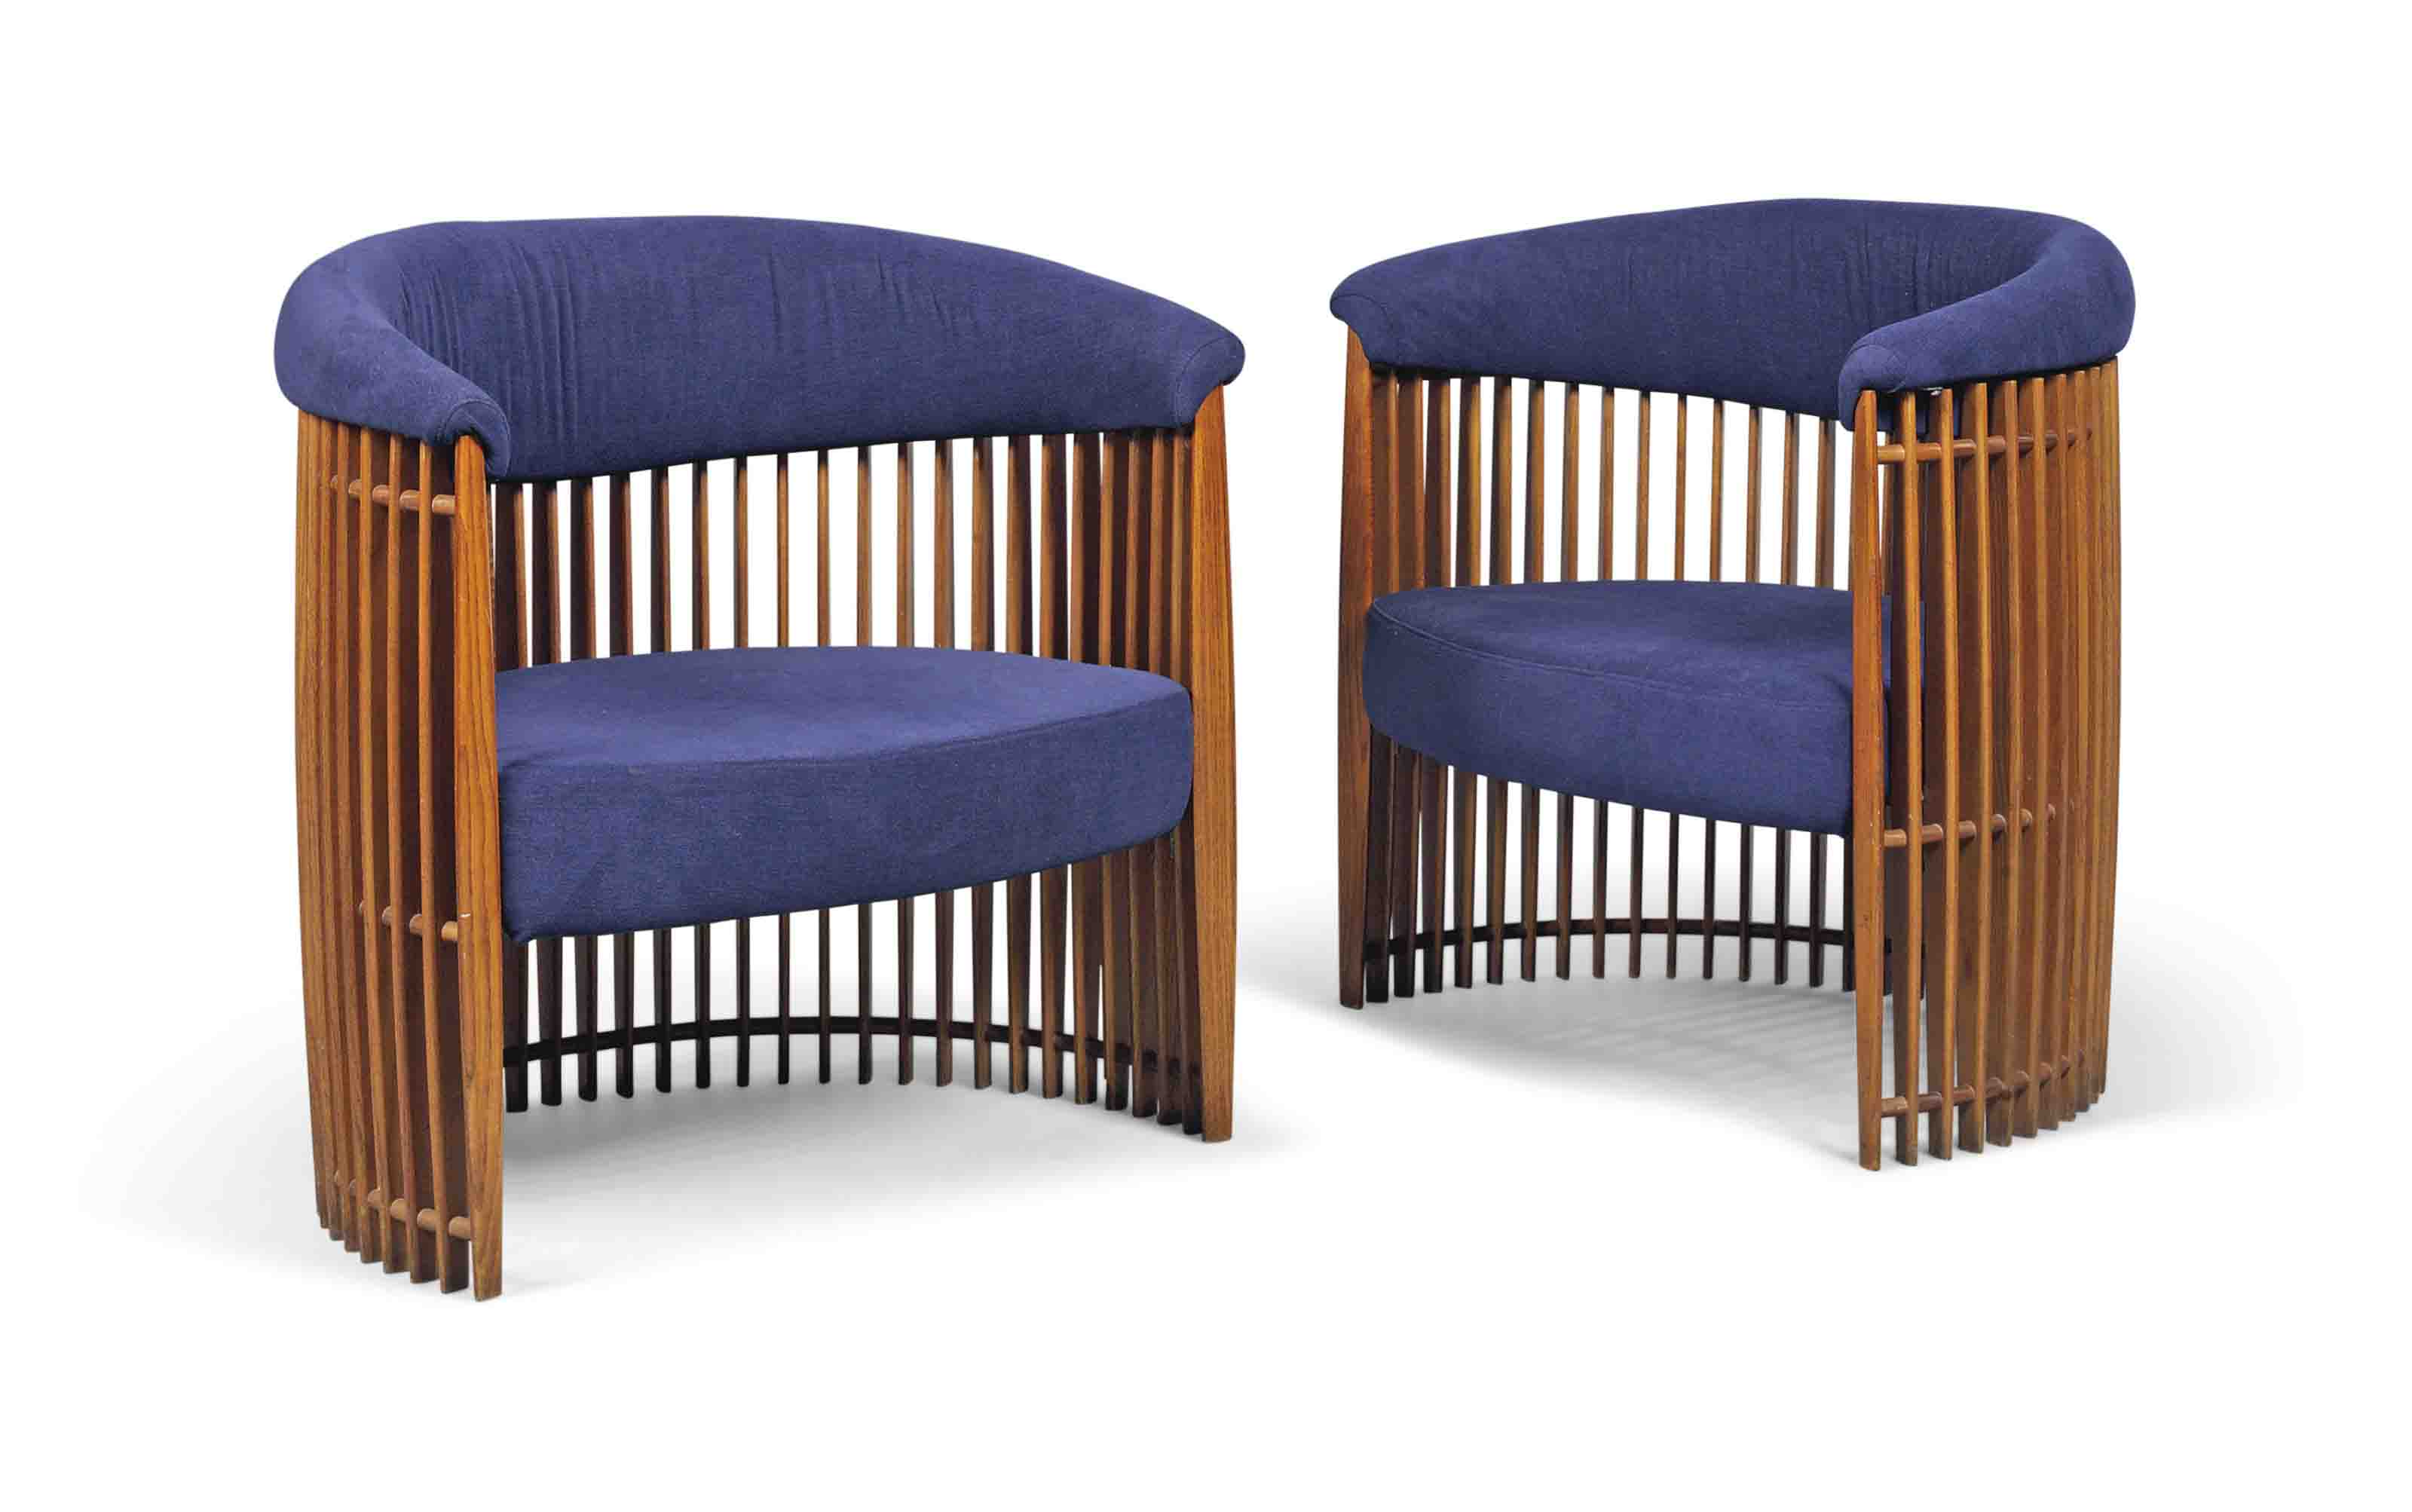 A PAIR OF FRENCH SLATTED ASH AND UPHOLSTERED ARMCHAIRS